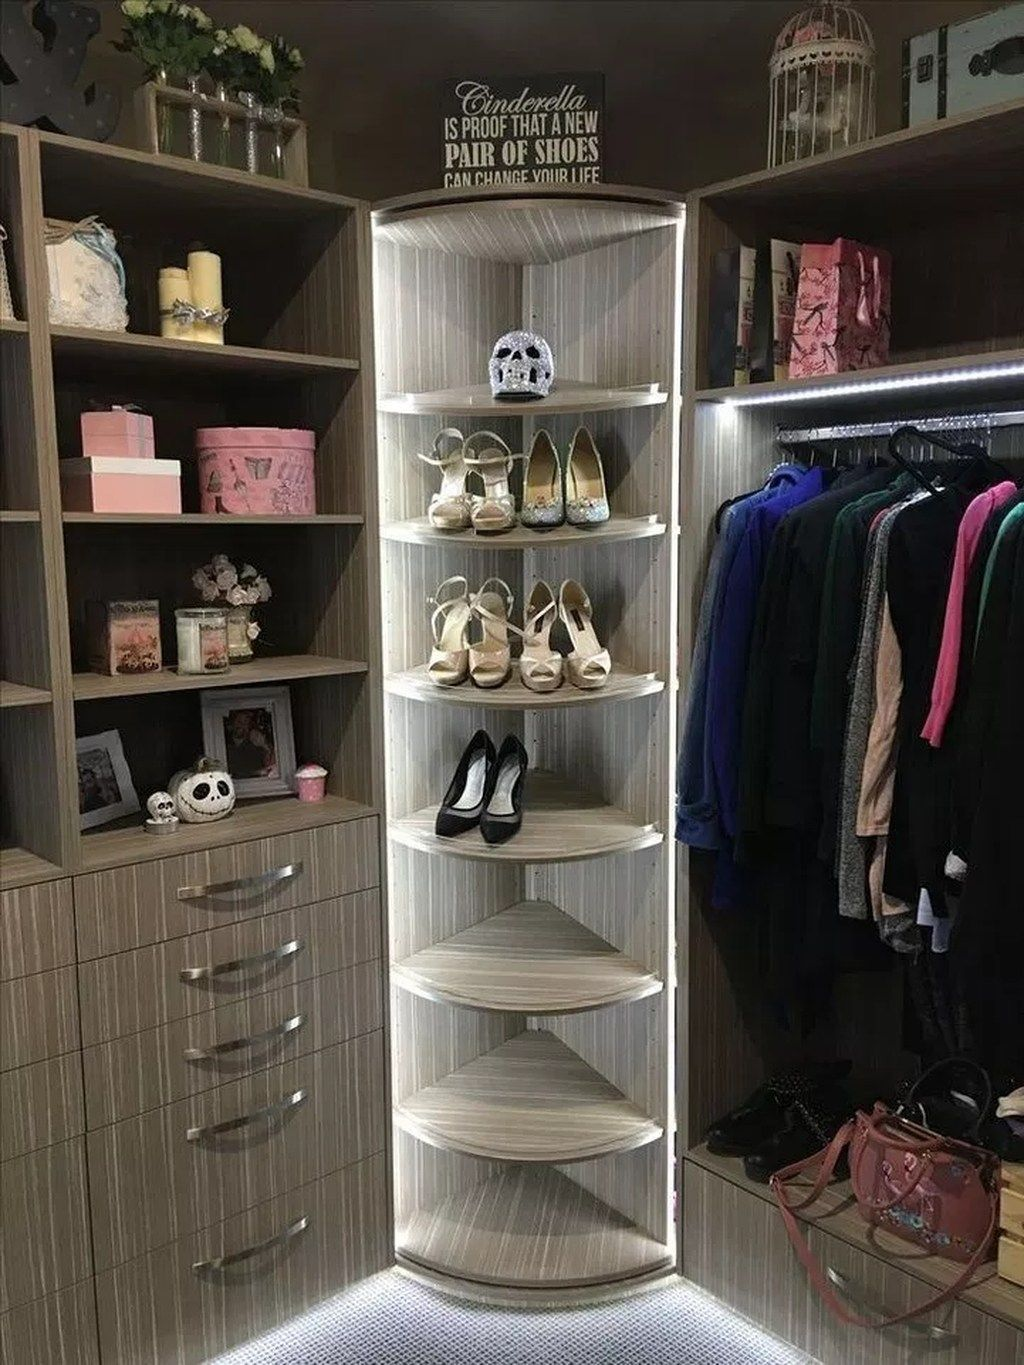 Latest Shoes Rack Design Ideas To Try 31 In 2020 With Images